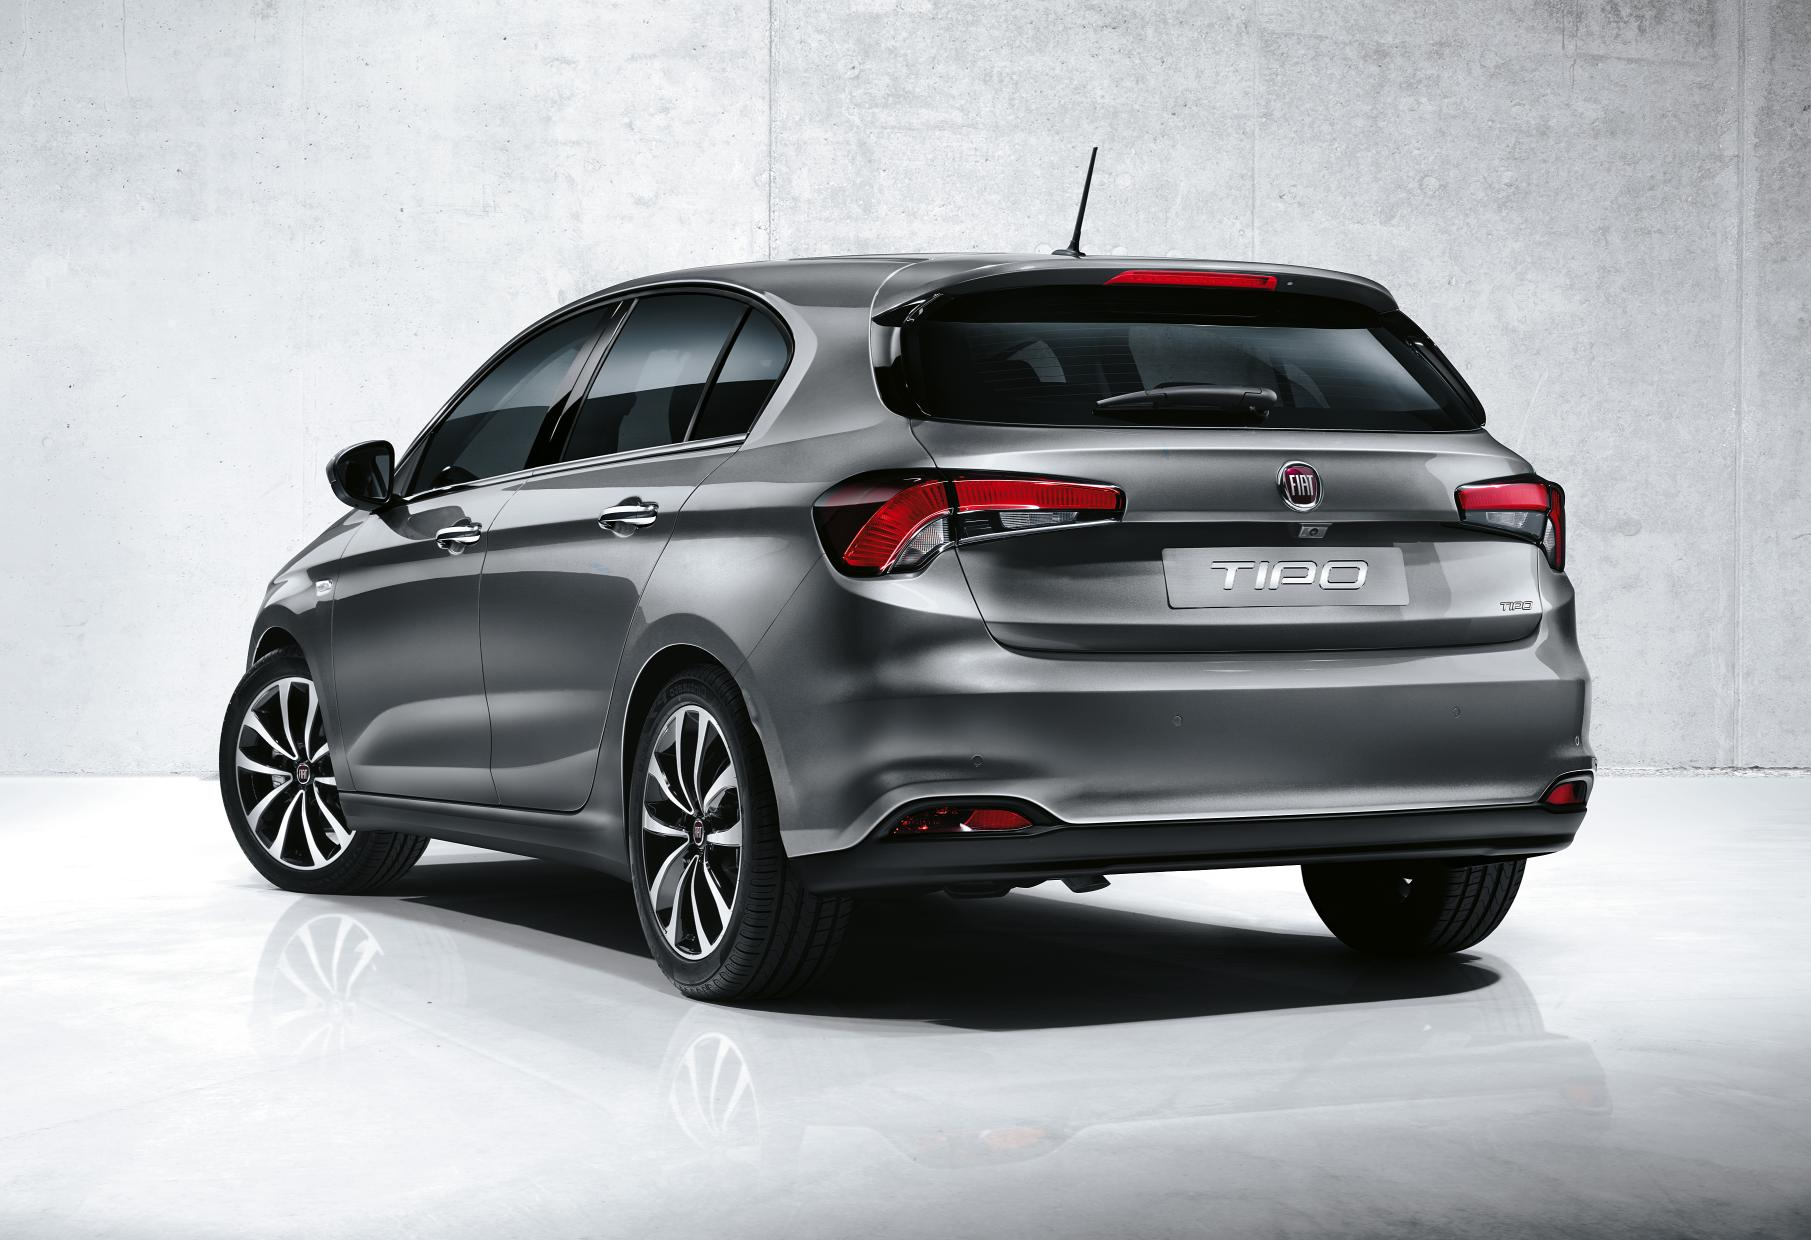 2016 Fiat Tipo Hatchback Priced At 12750 In Italy Station Wagon At 15900 106028 on cars on sale